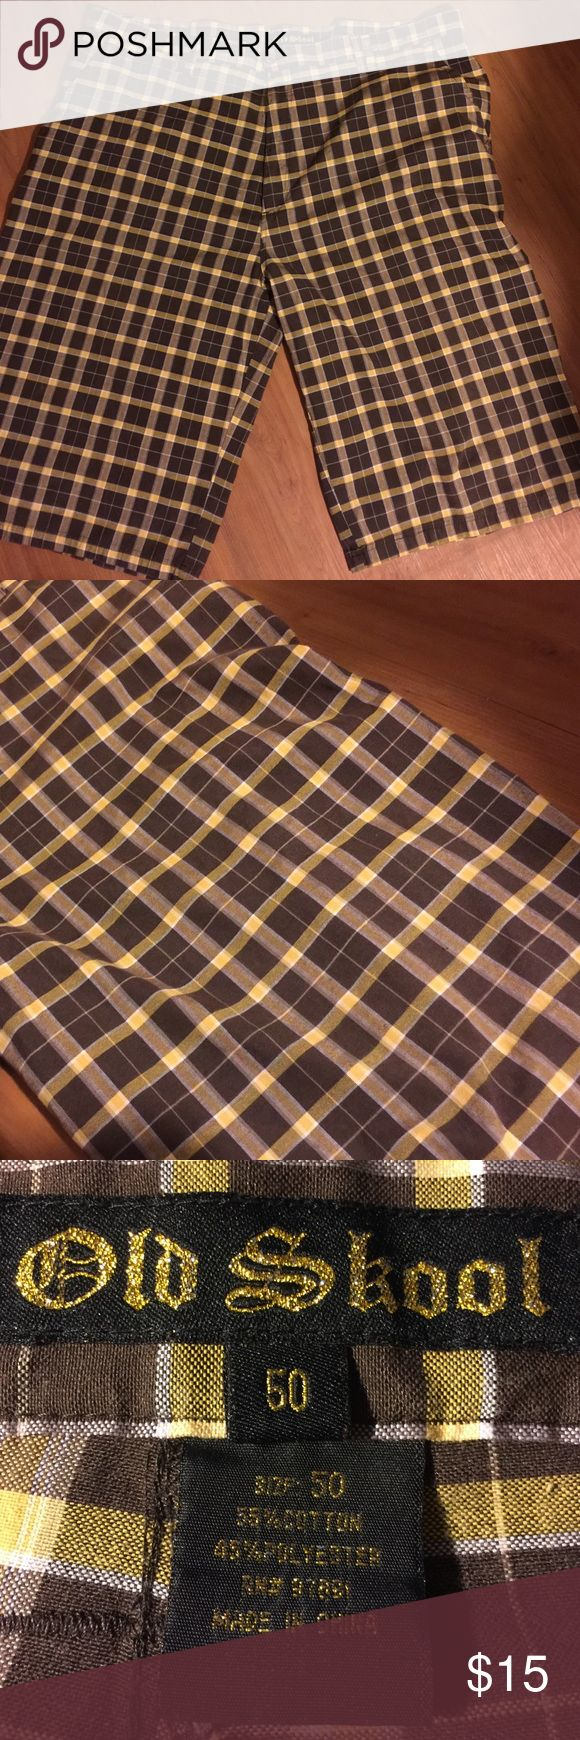 Men's Shorts These are a size 50 old-school men's brown and yellow plaid shorts Old School Shorts